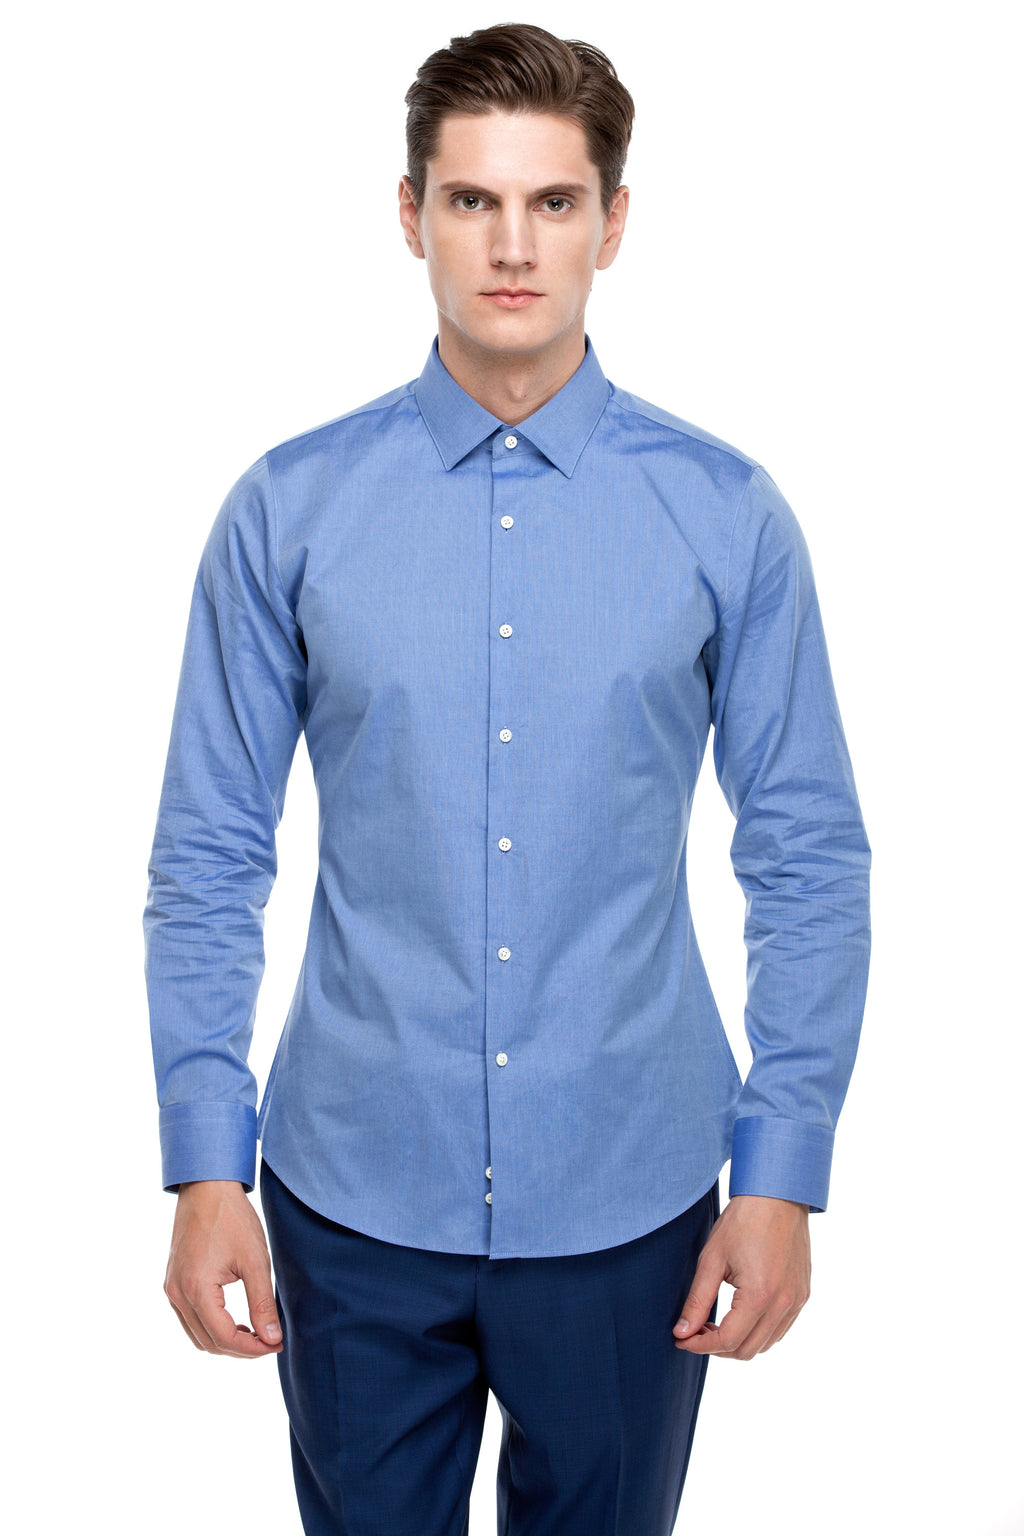 Custom Blue Shirt ottotos